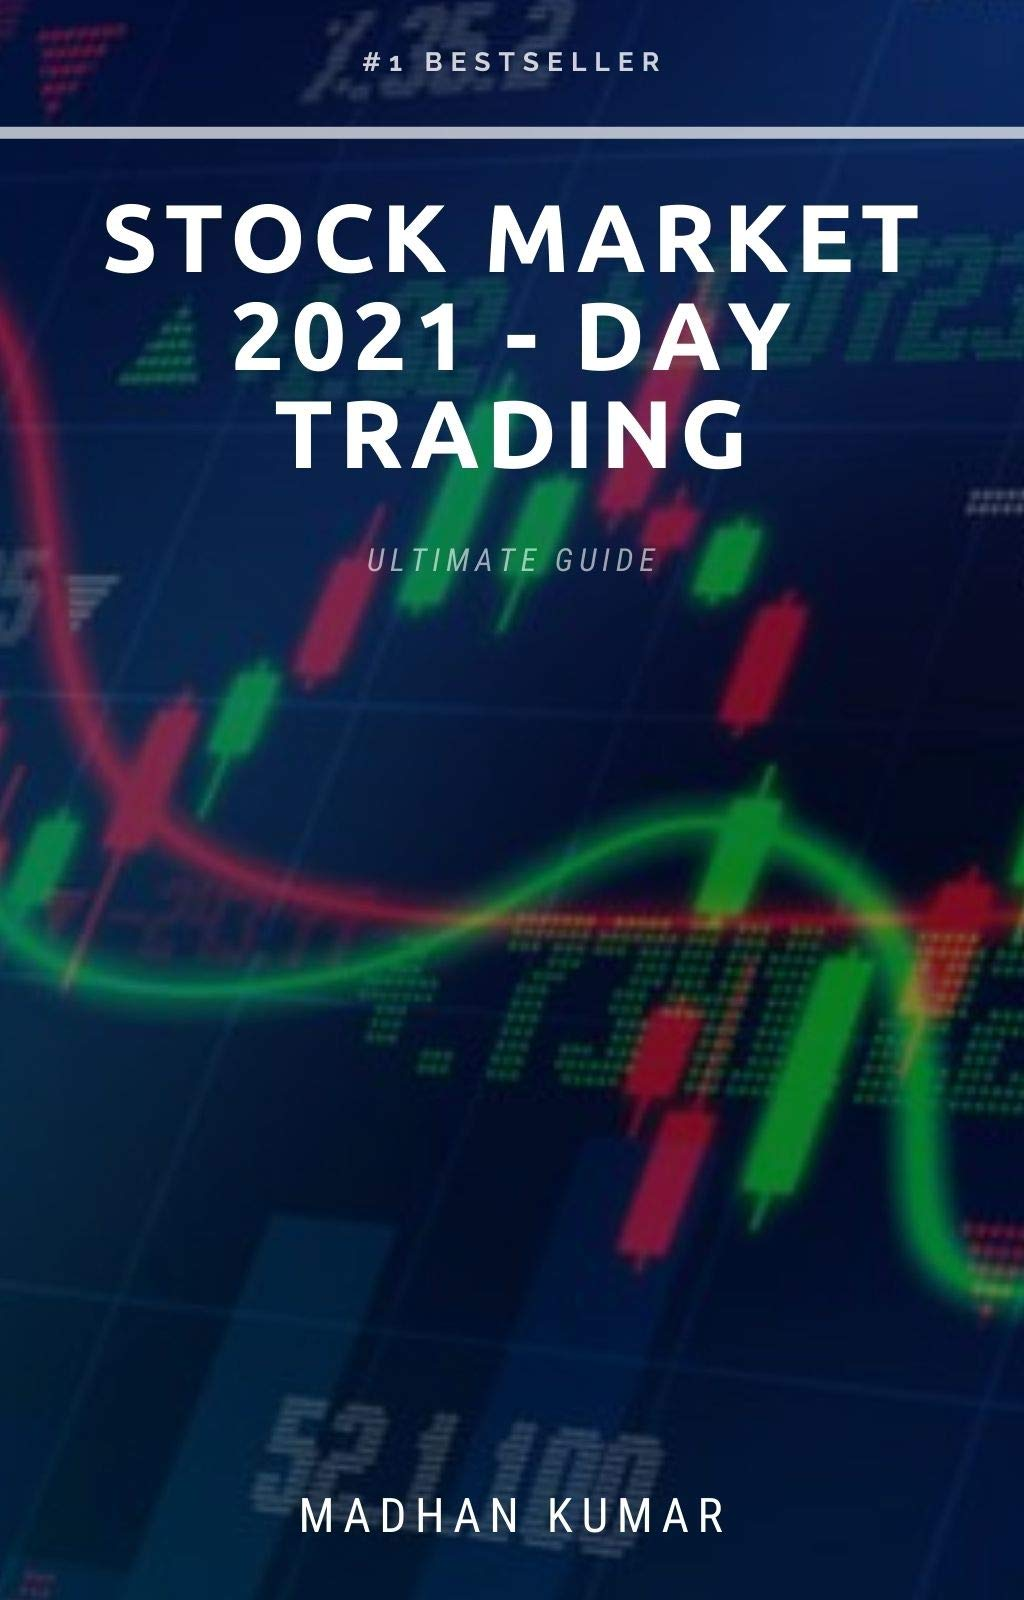 STOCK MARKET 2021 - DAY TRADING: ULTIMATE GUIDE